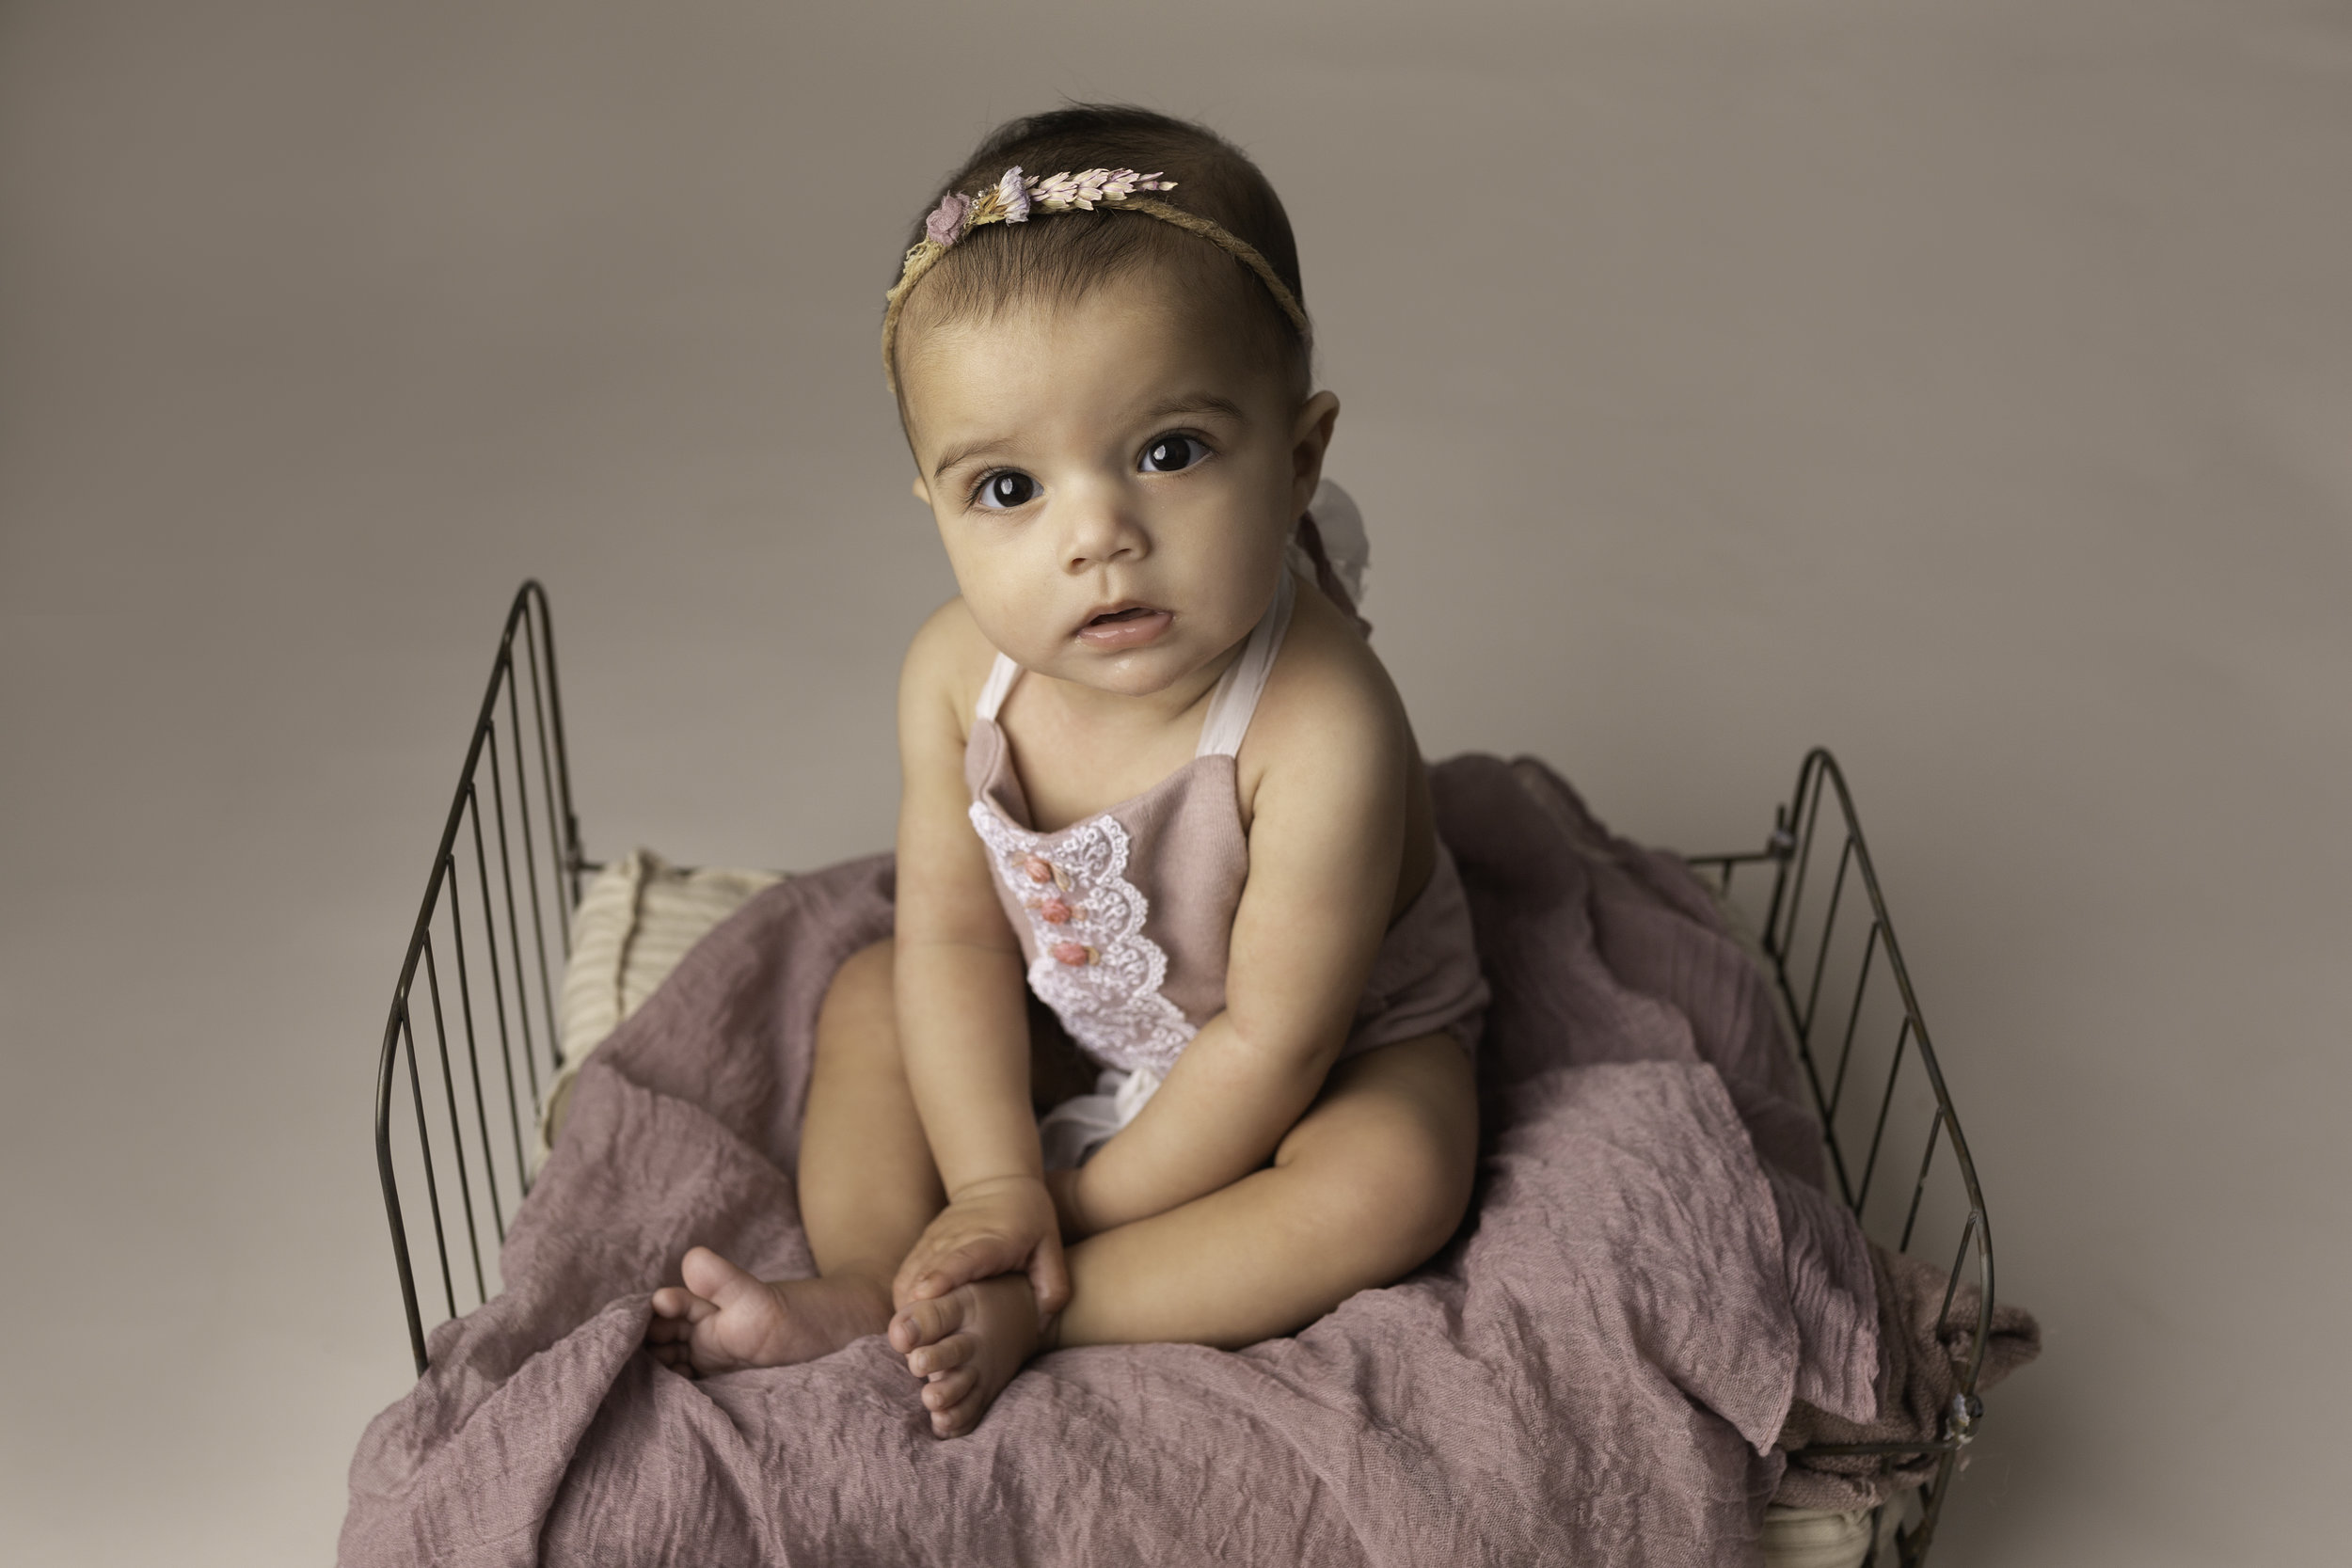 Lea-cooper-photography-childrens-photographer-portrait-session-sitter-session-6-months-old-photos-willenhall-wolverahmpton-birmingham-west-midlands-uk-7.jpg